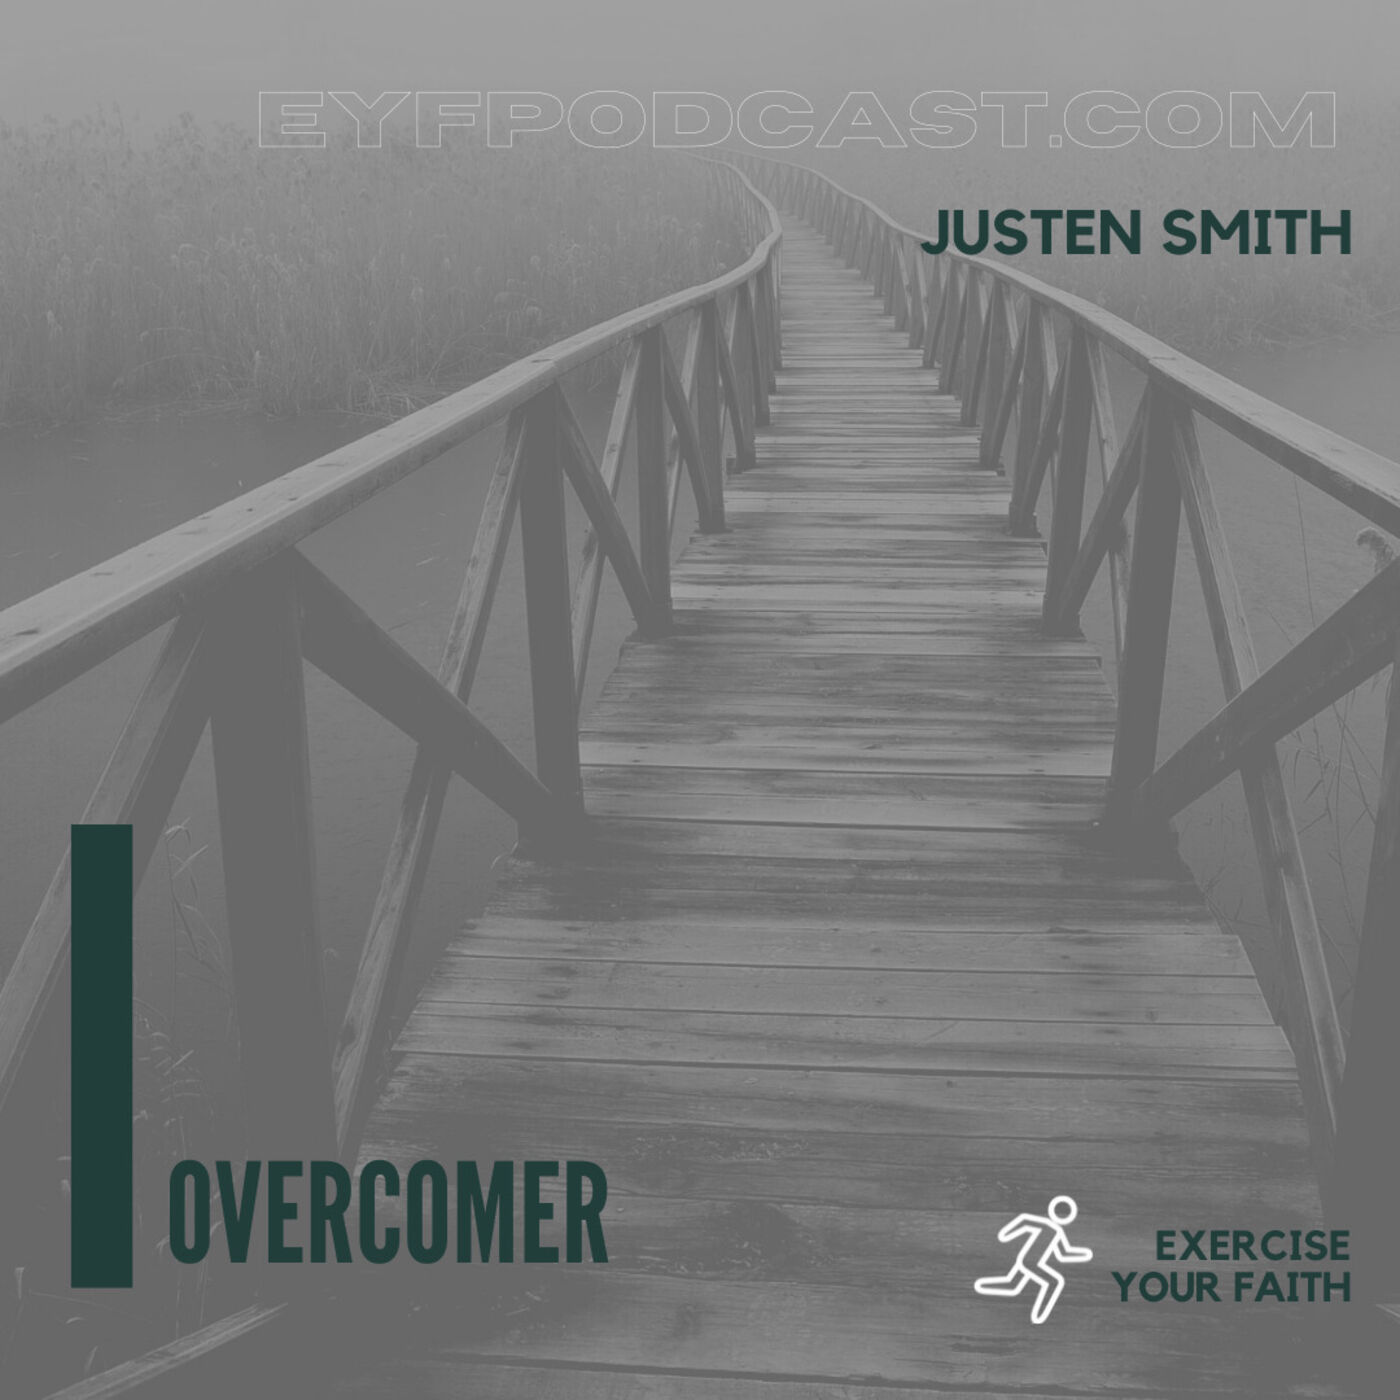 EYFPodcast- Exercise Your Faith by Walking in another's shoes. A conversation with Justen Smith